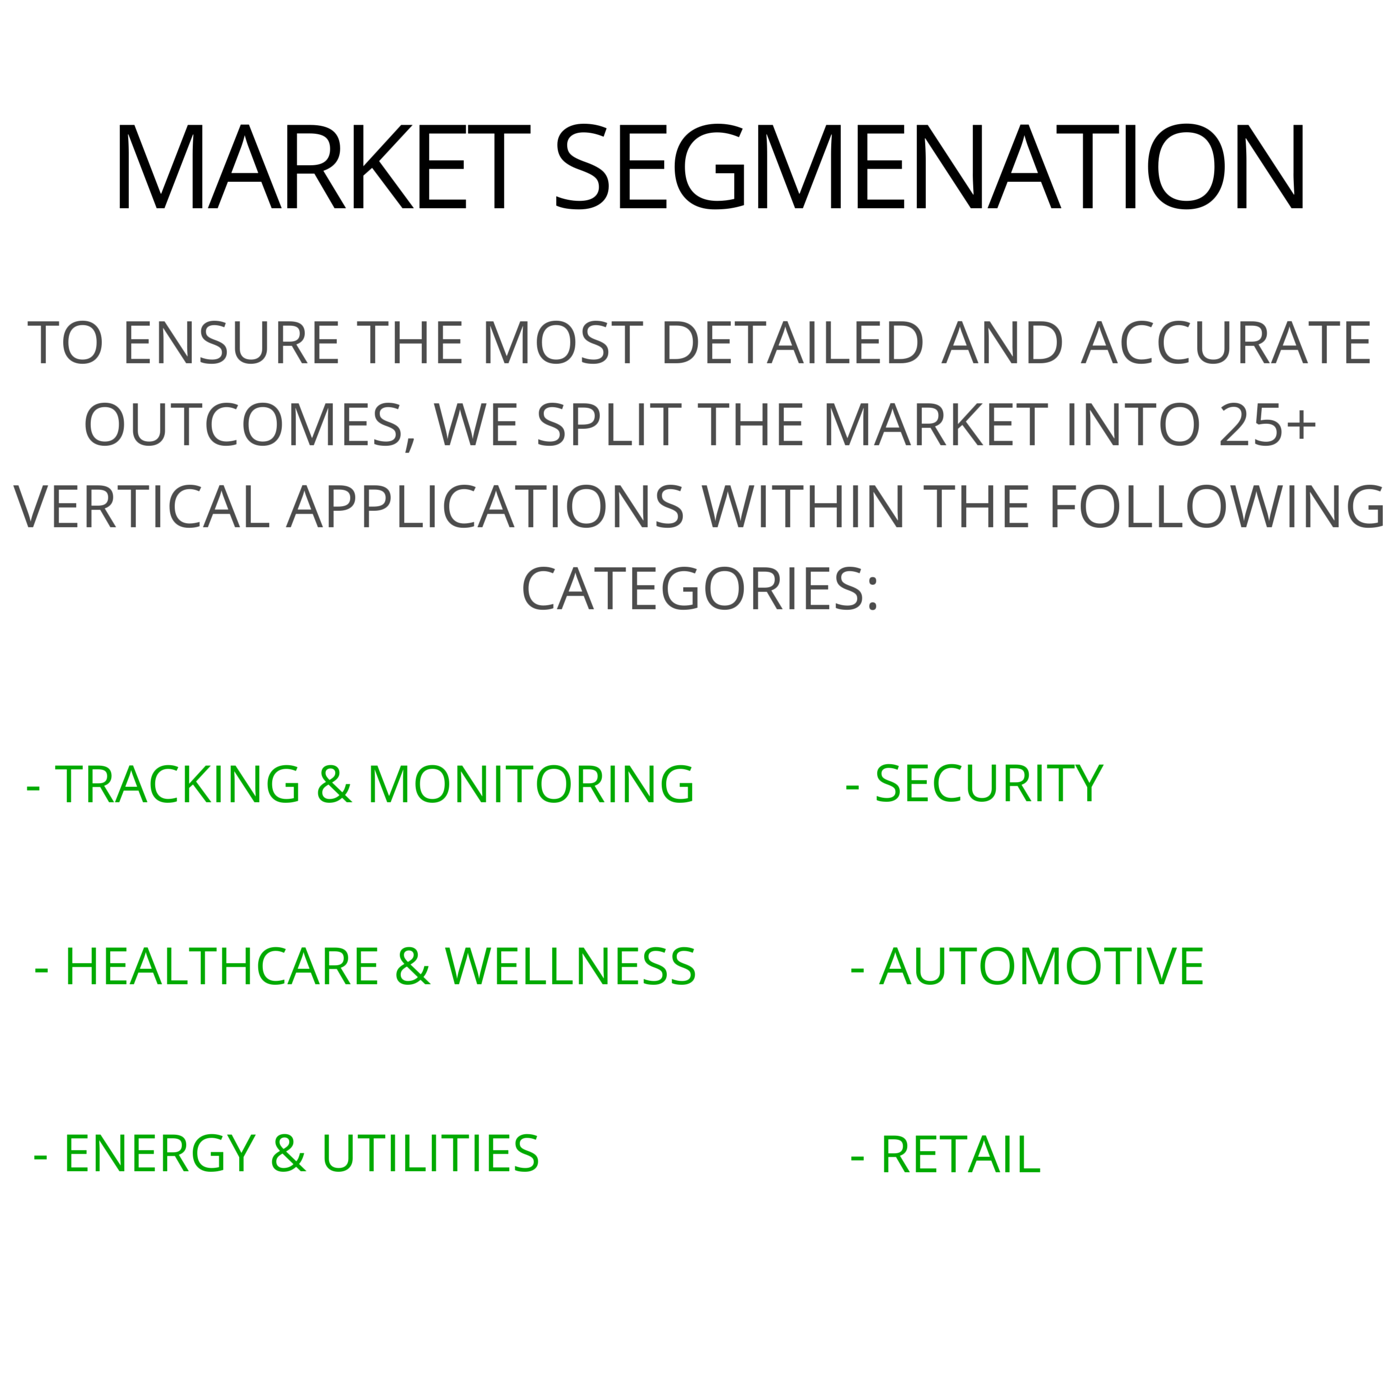 marketsegmentation3.png